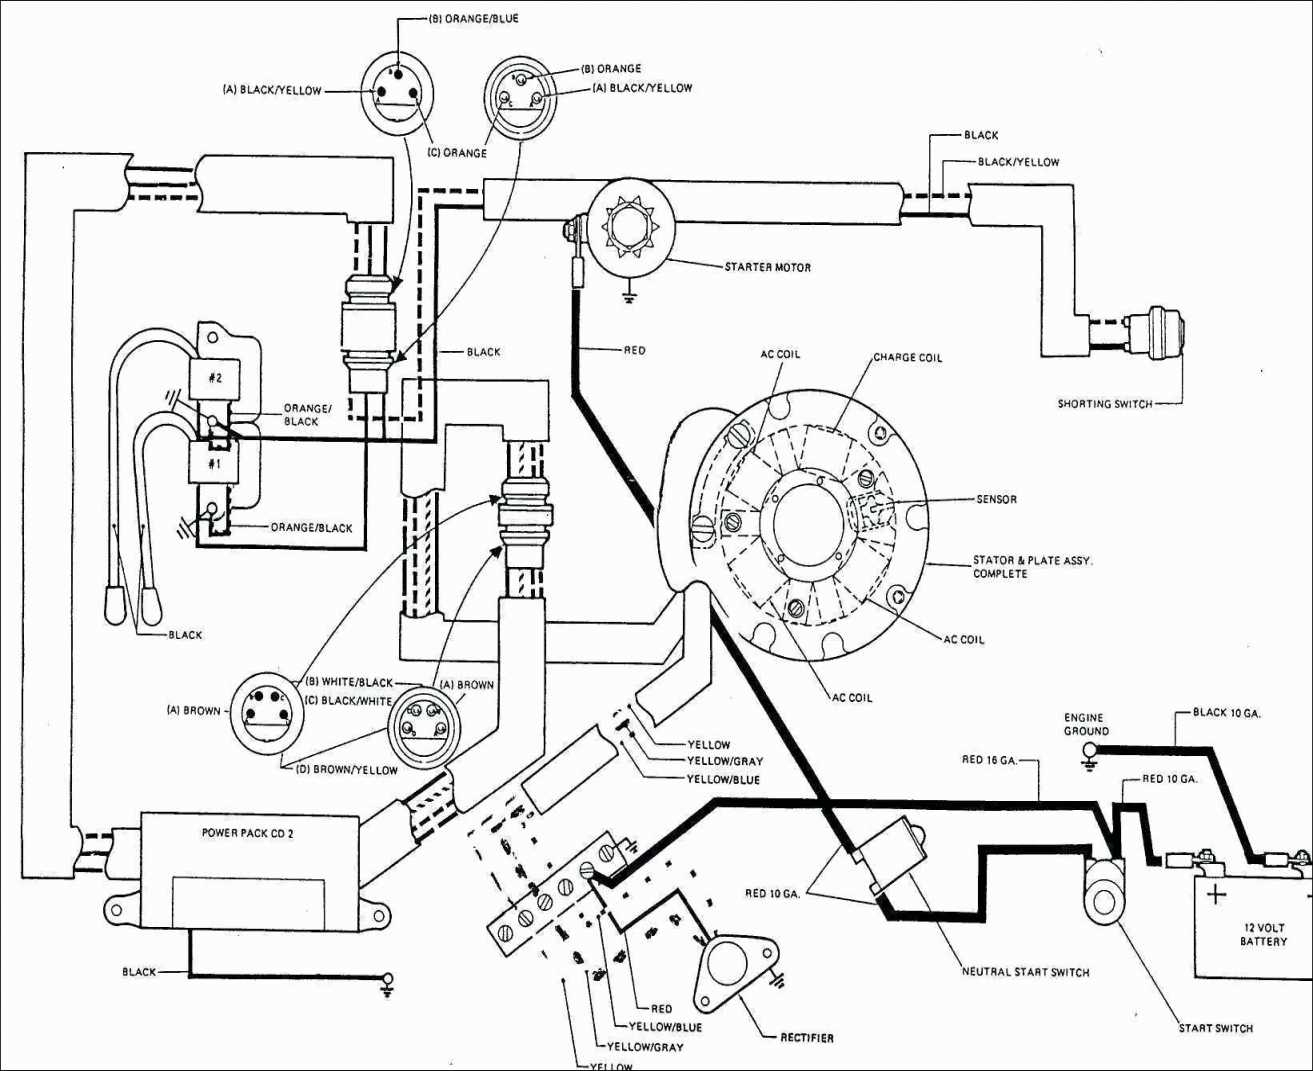 Gm 1 Wire Alternator Wiring Diagram Gm 1 Wire Alternator Wiring - Gm 4 Wire Alternator Wiring Diagram